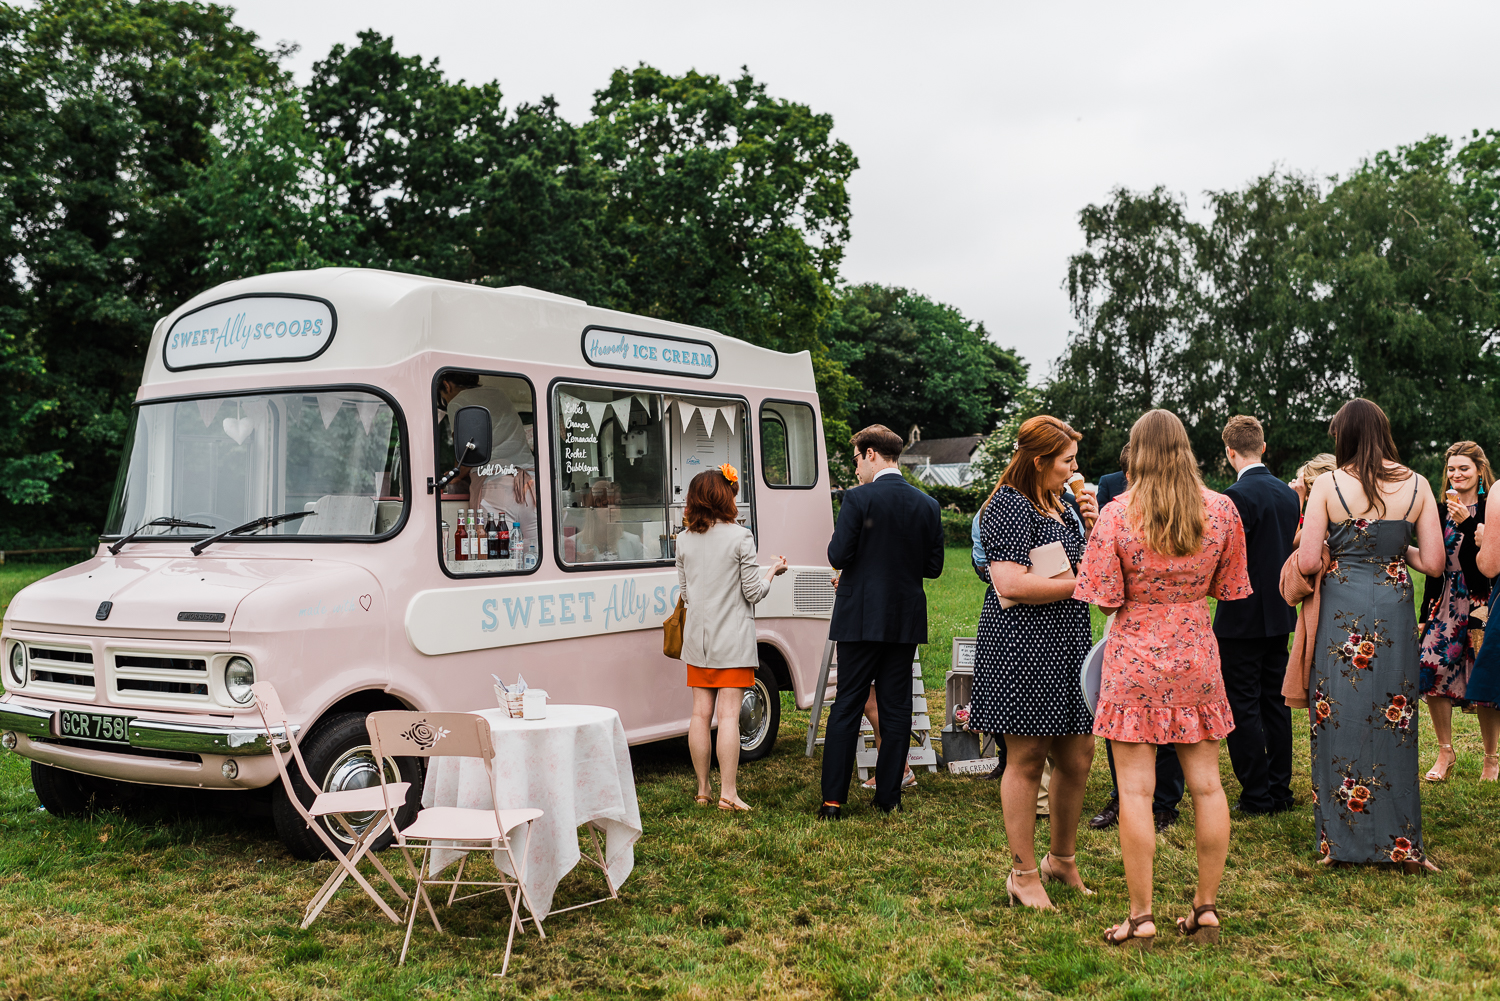 Wedding guests queuing up for ice-cream at SweetAllyscoops